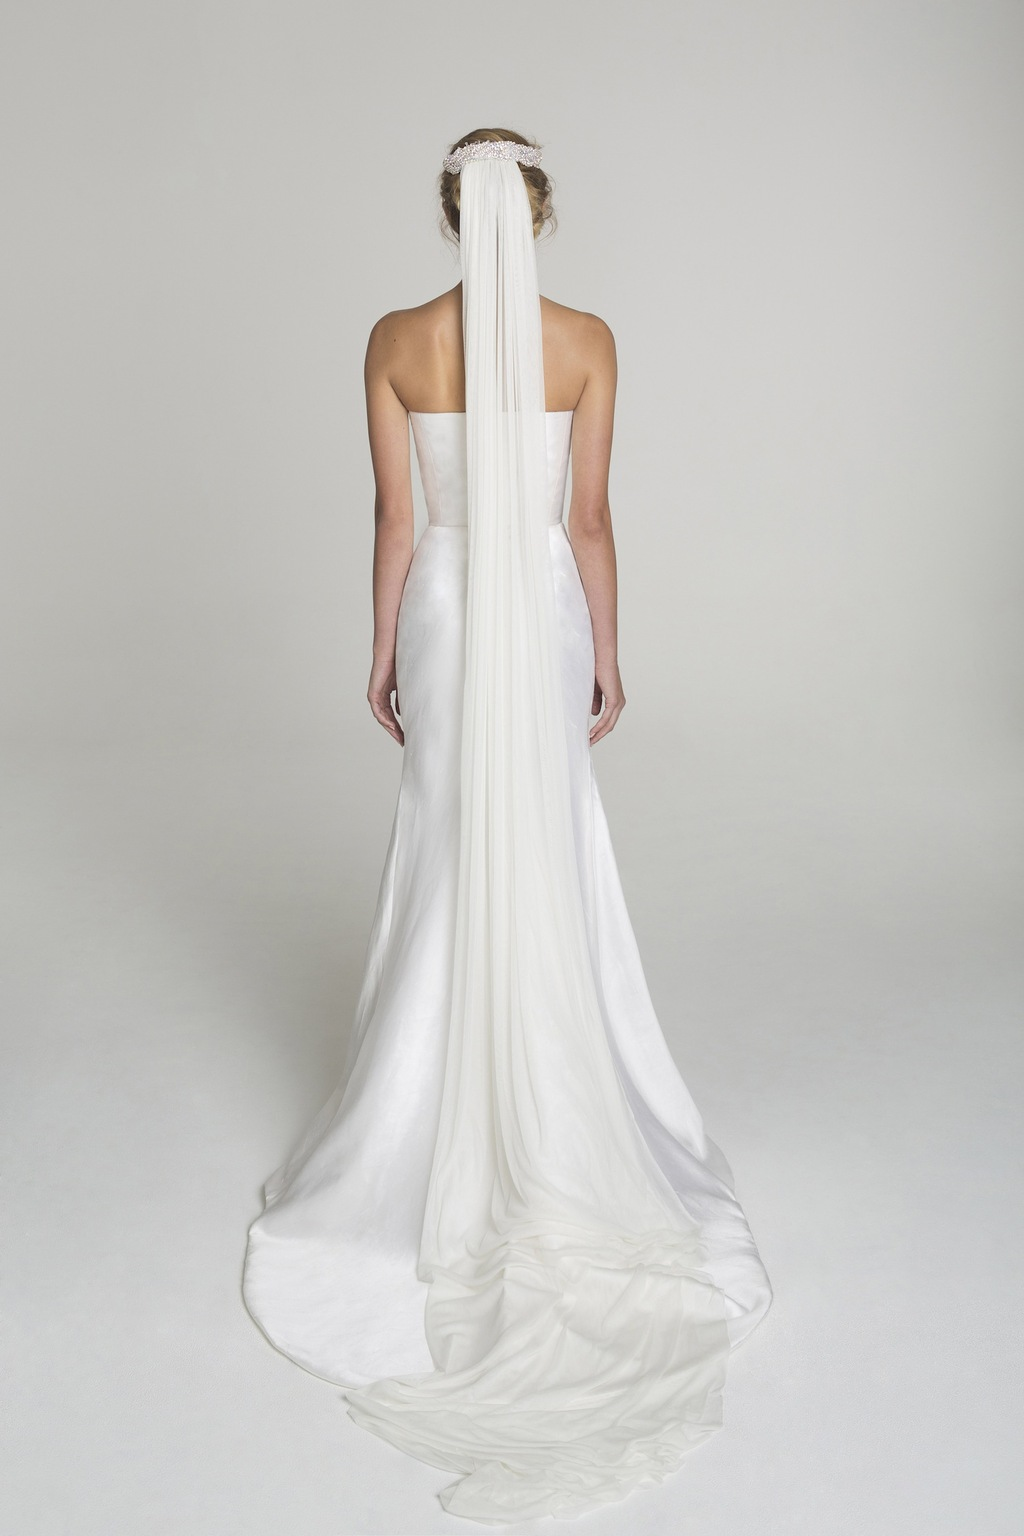 Strapless wedding dress from Alana Aoun